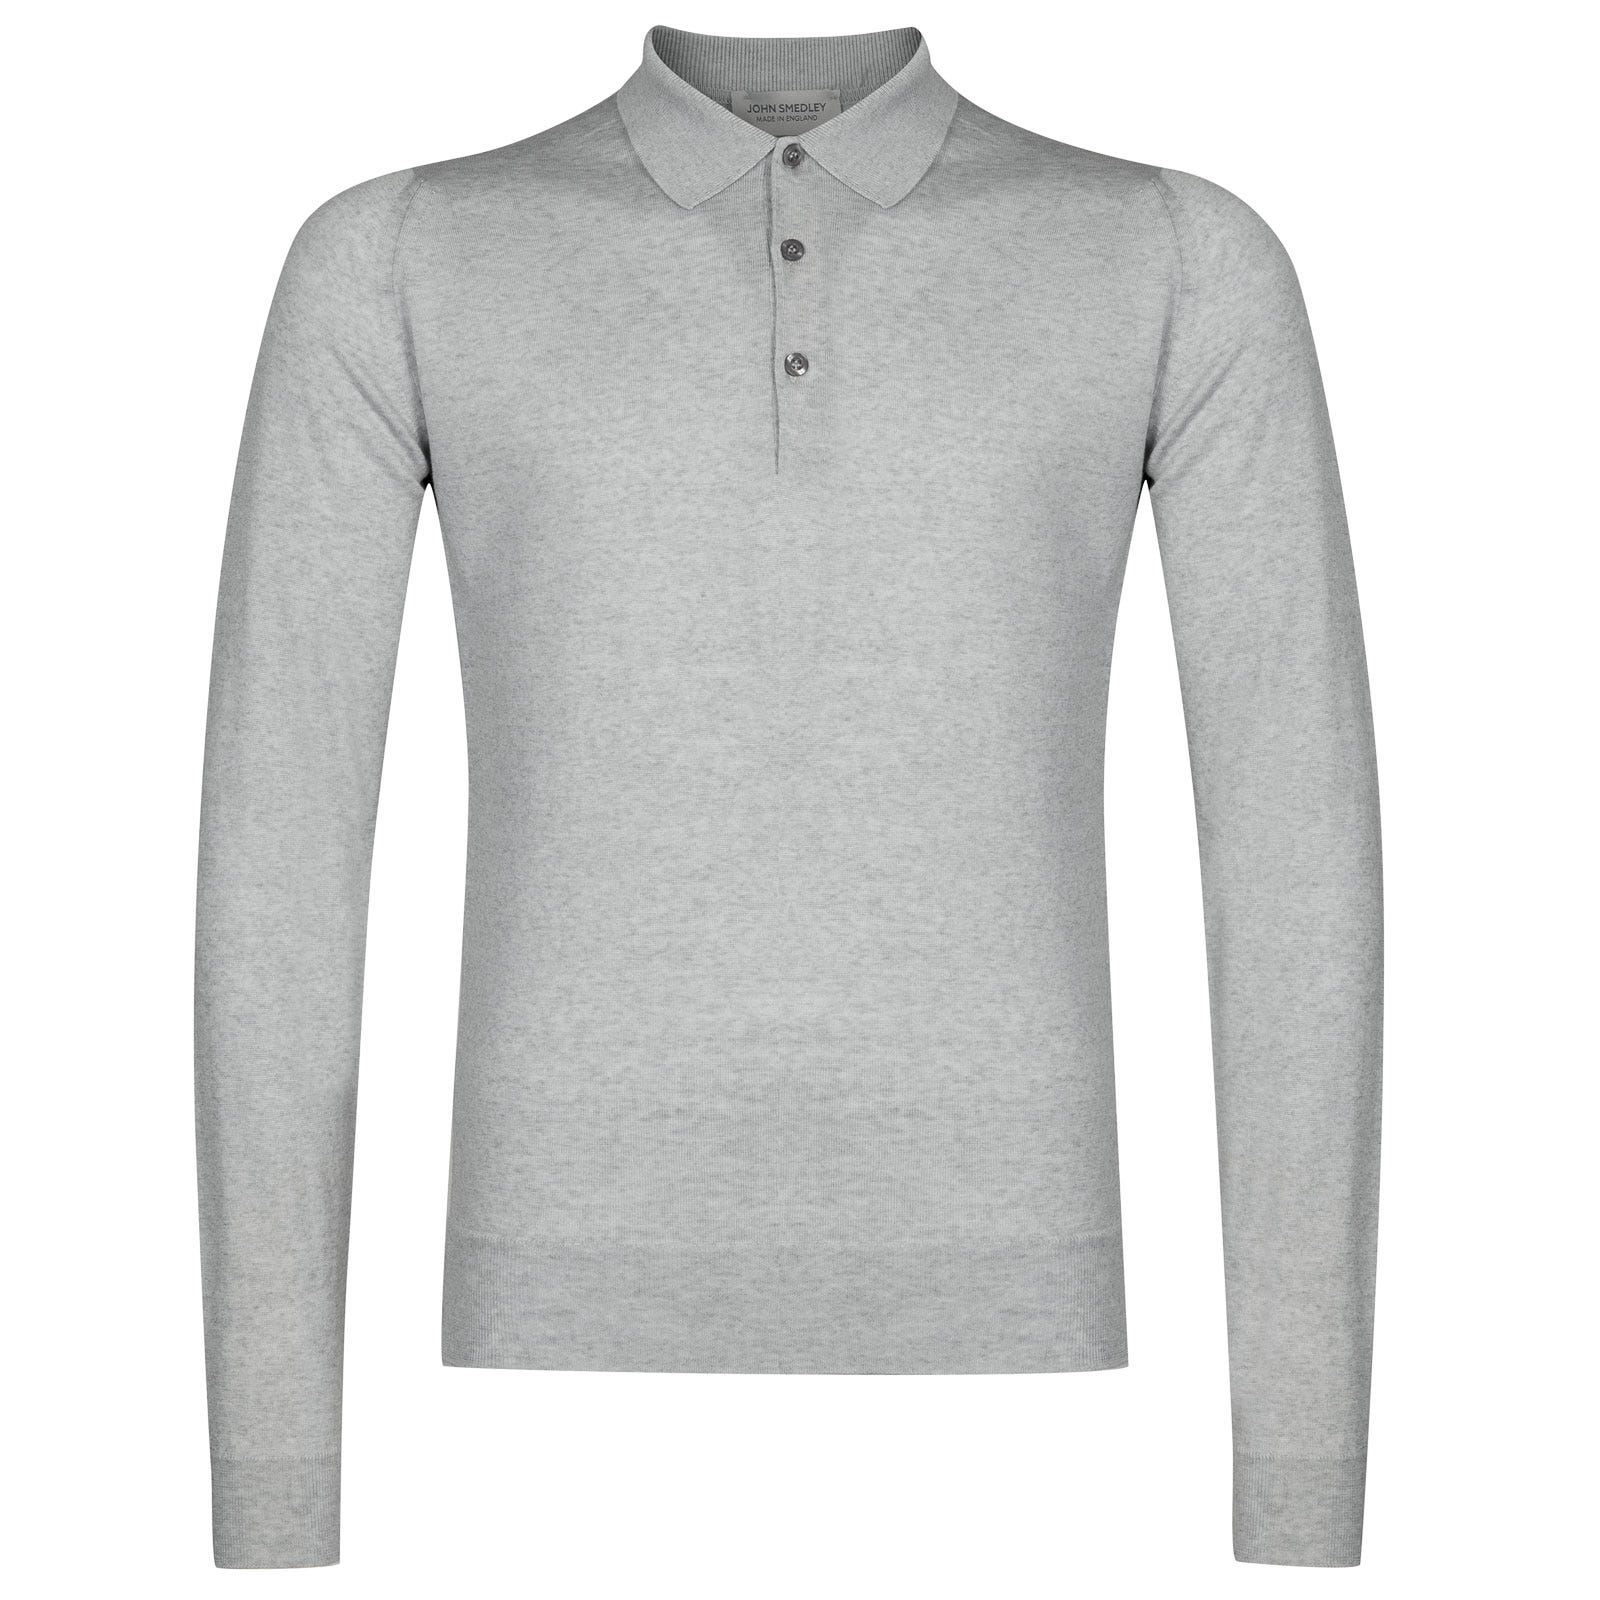 John Smedley belper Merino Wool Shirt in Bardot Grey-M